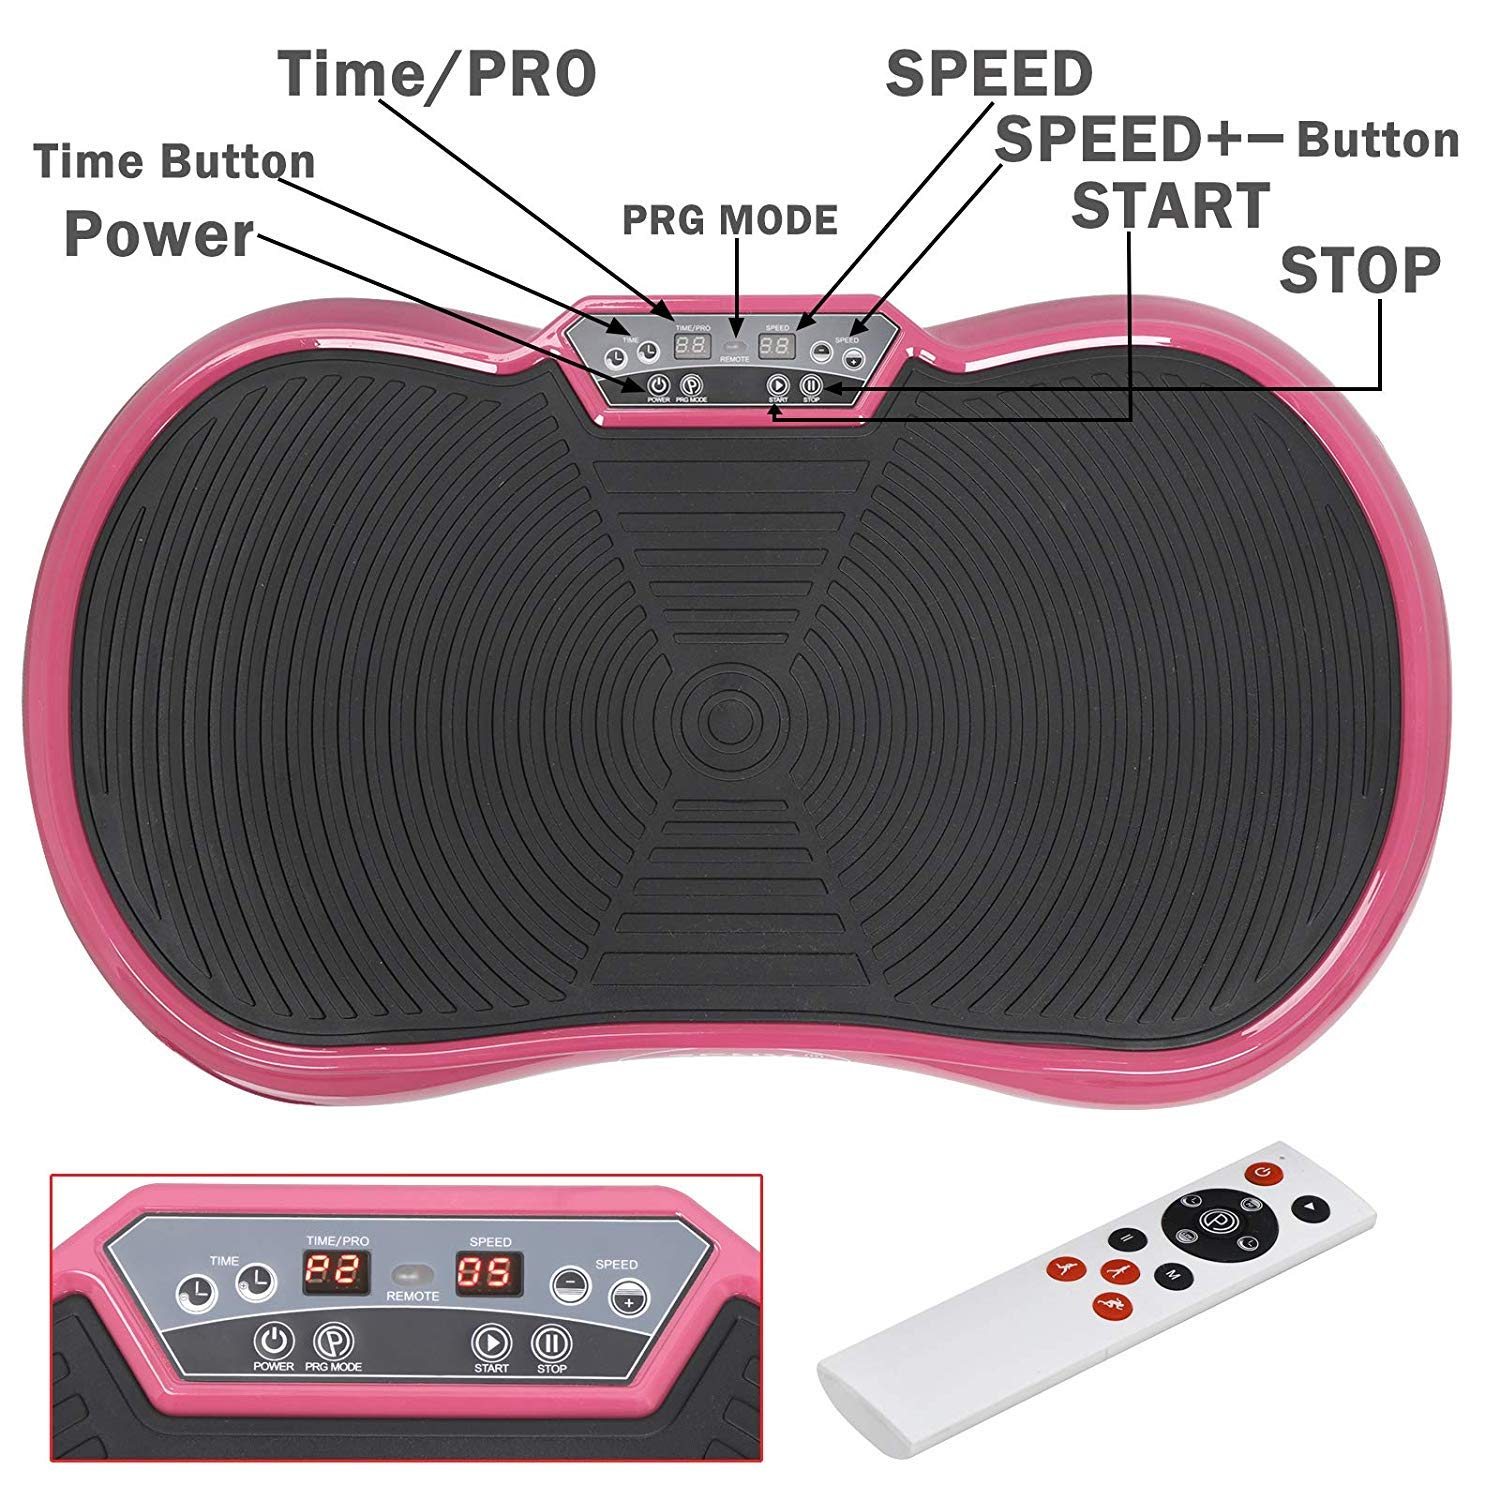 HomGarden Vibration Platform Fitness Vibration Plates Workout Massage Machine, Full Body Crazy Exercise Fit Equipment for Weight Loss w/Bluetooth by HomGarden (Image #4)